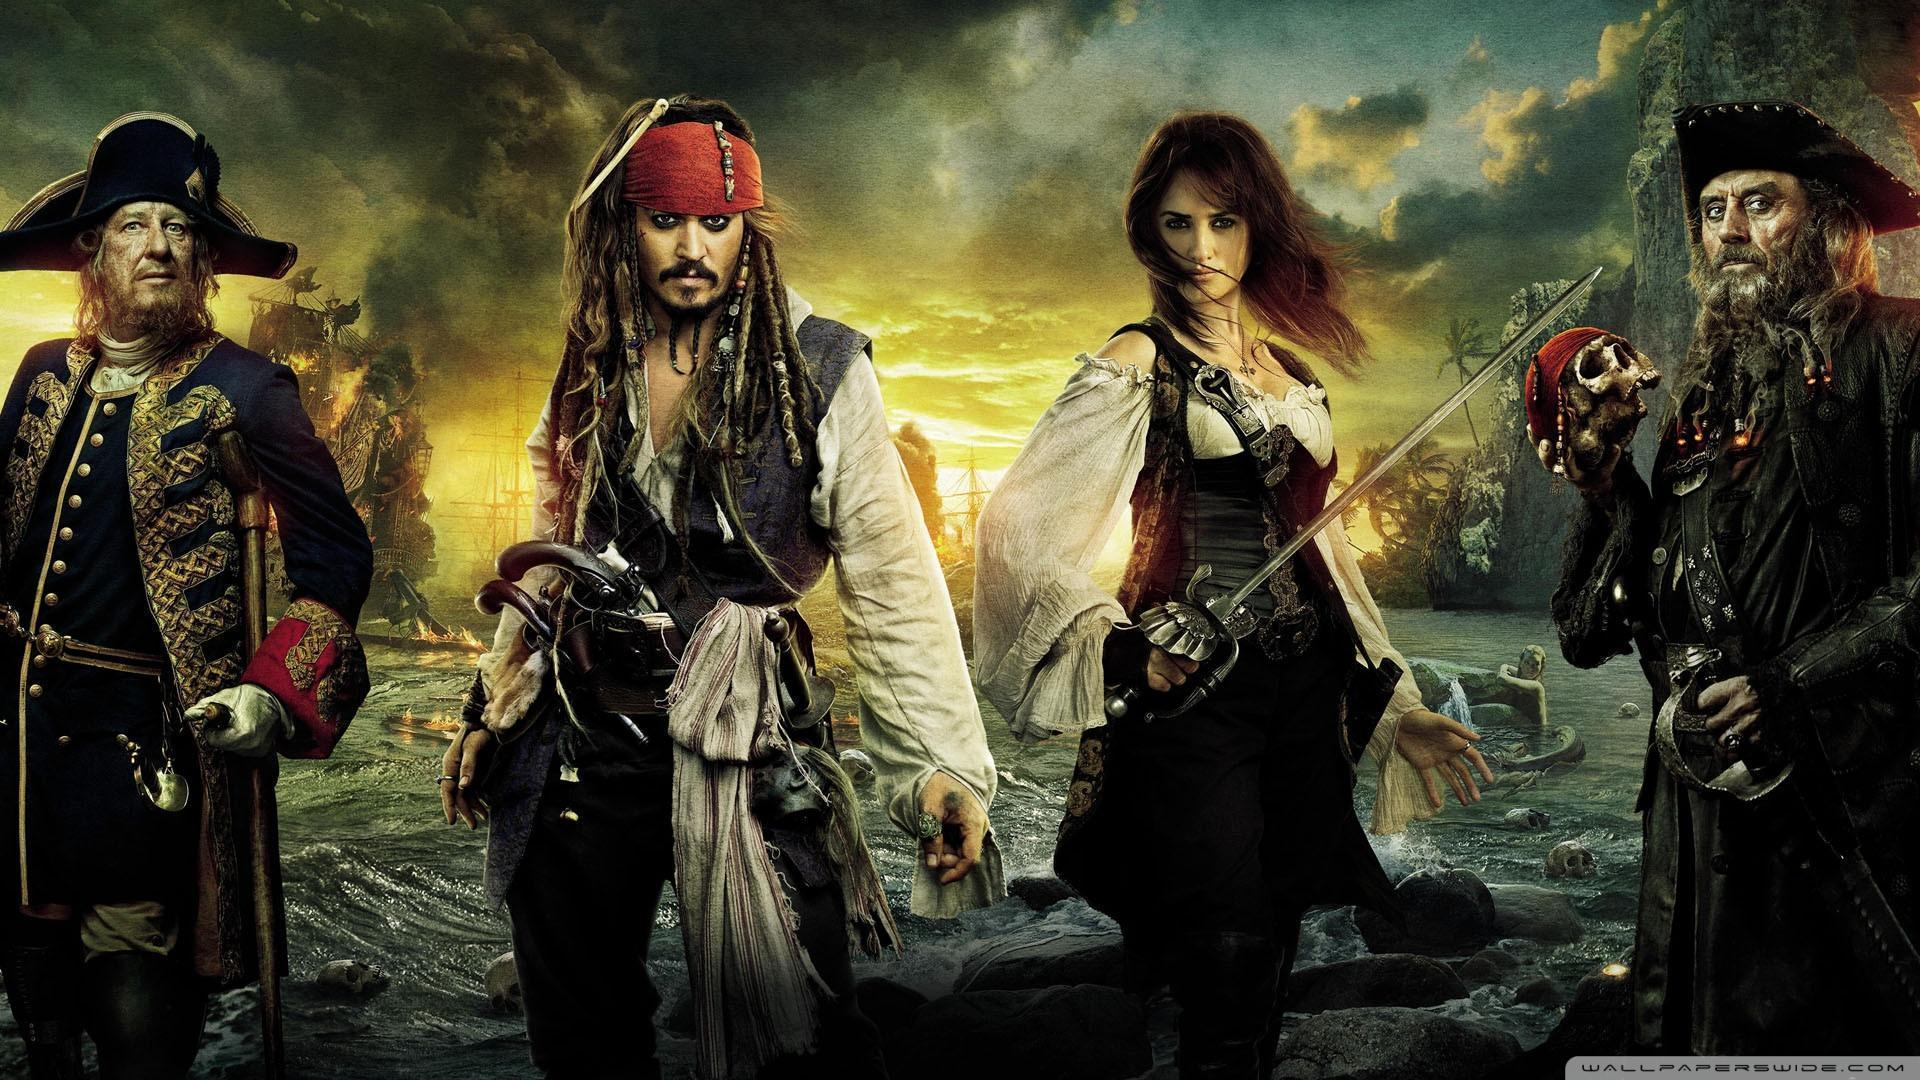 Pirates Of The Caribbean On Stranger Tides 2011 Movie HD desktop